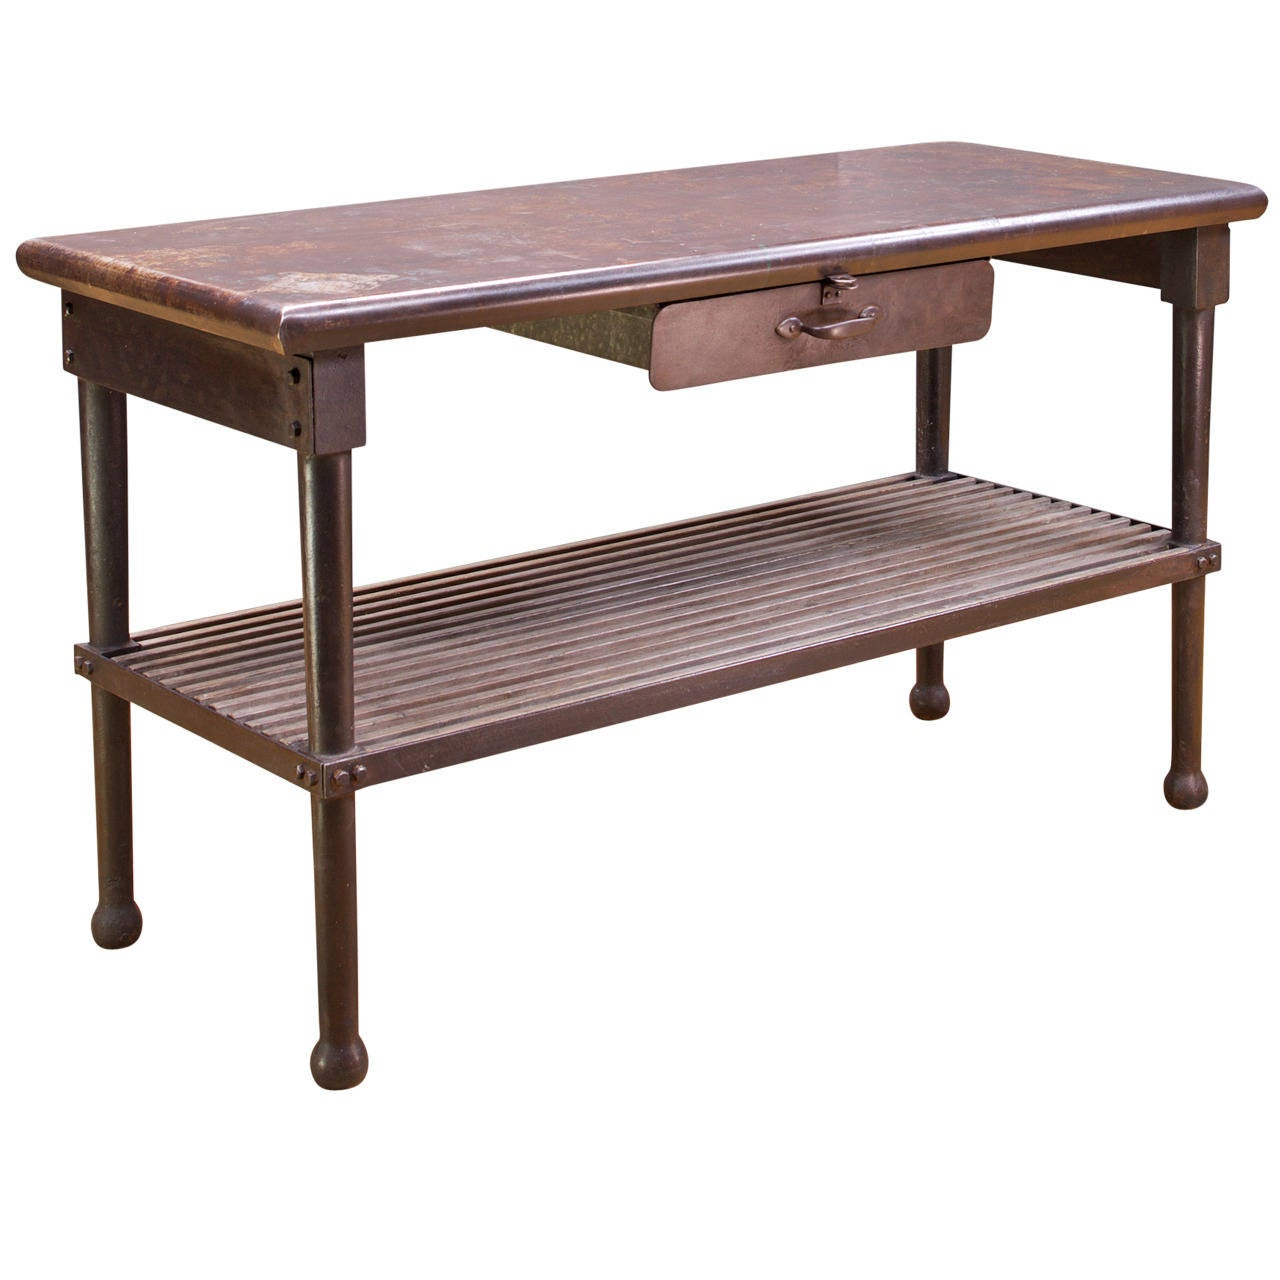 Genial Farm House Industrial Era Kitchen Worktable Bohemian Dark Iron Wood Slat  Kitchen For Sale